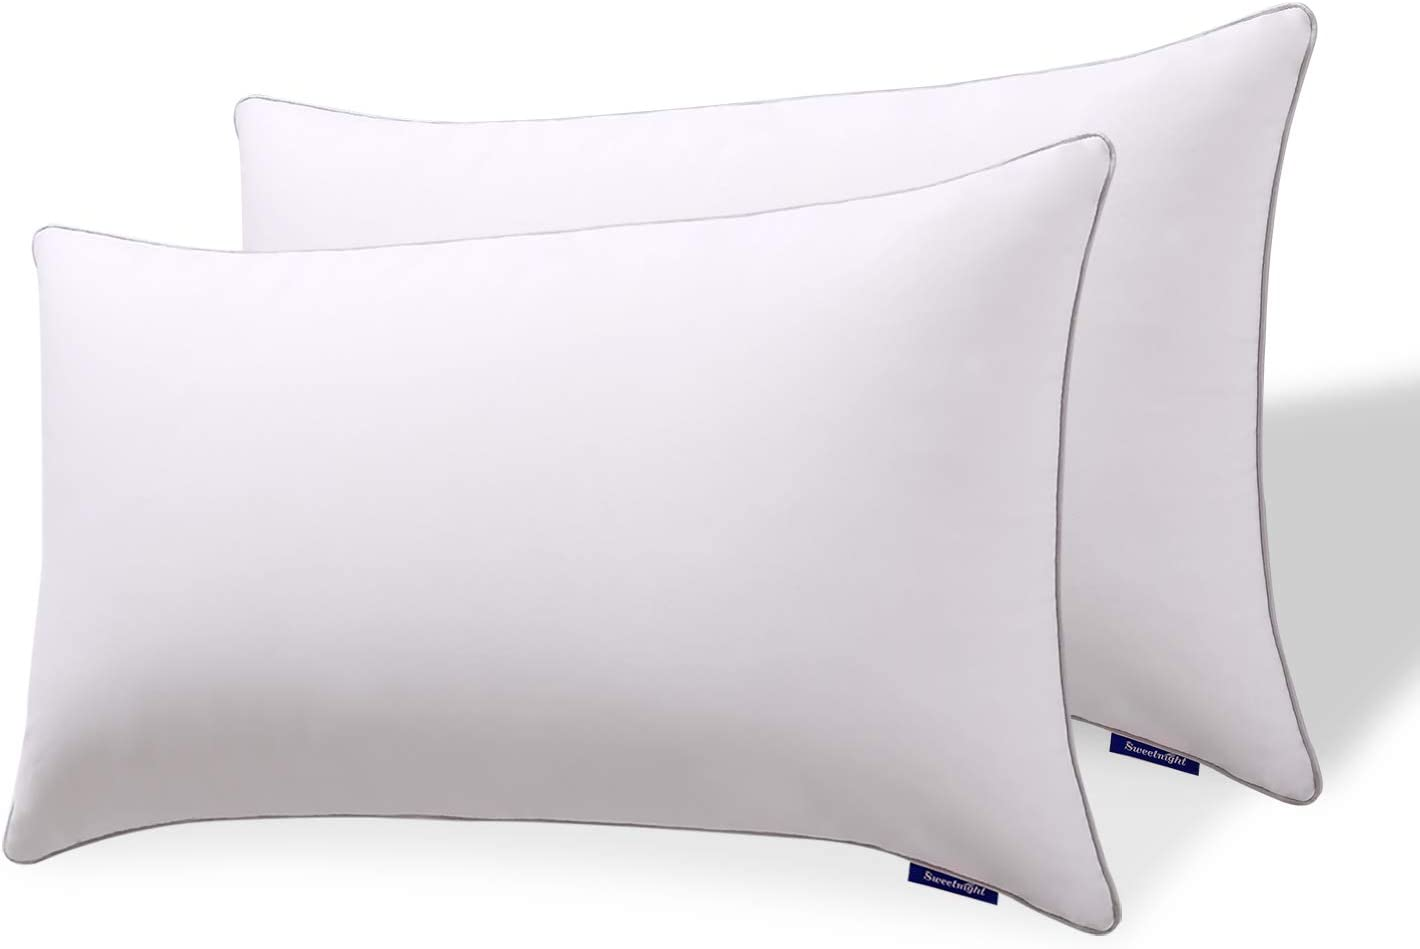 Amazon's No. 1 Best Selling Pillow Has